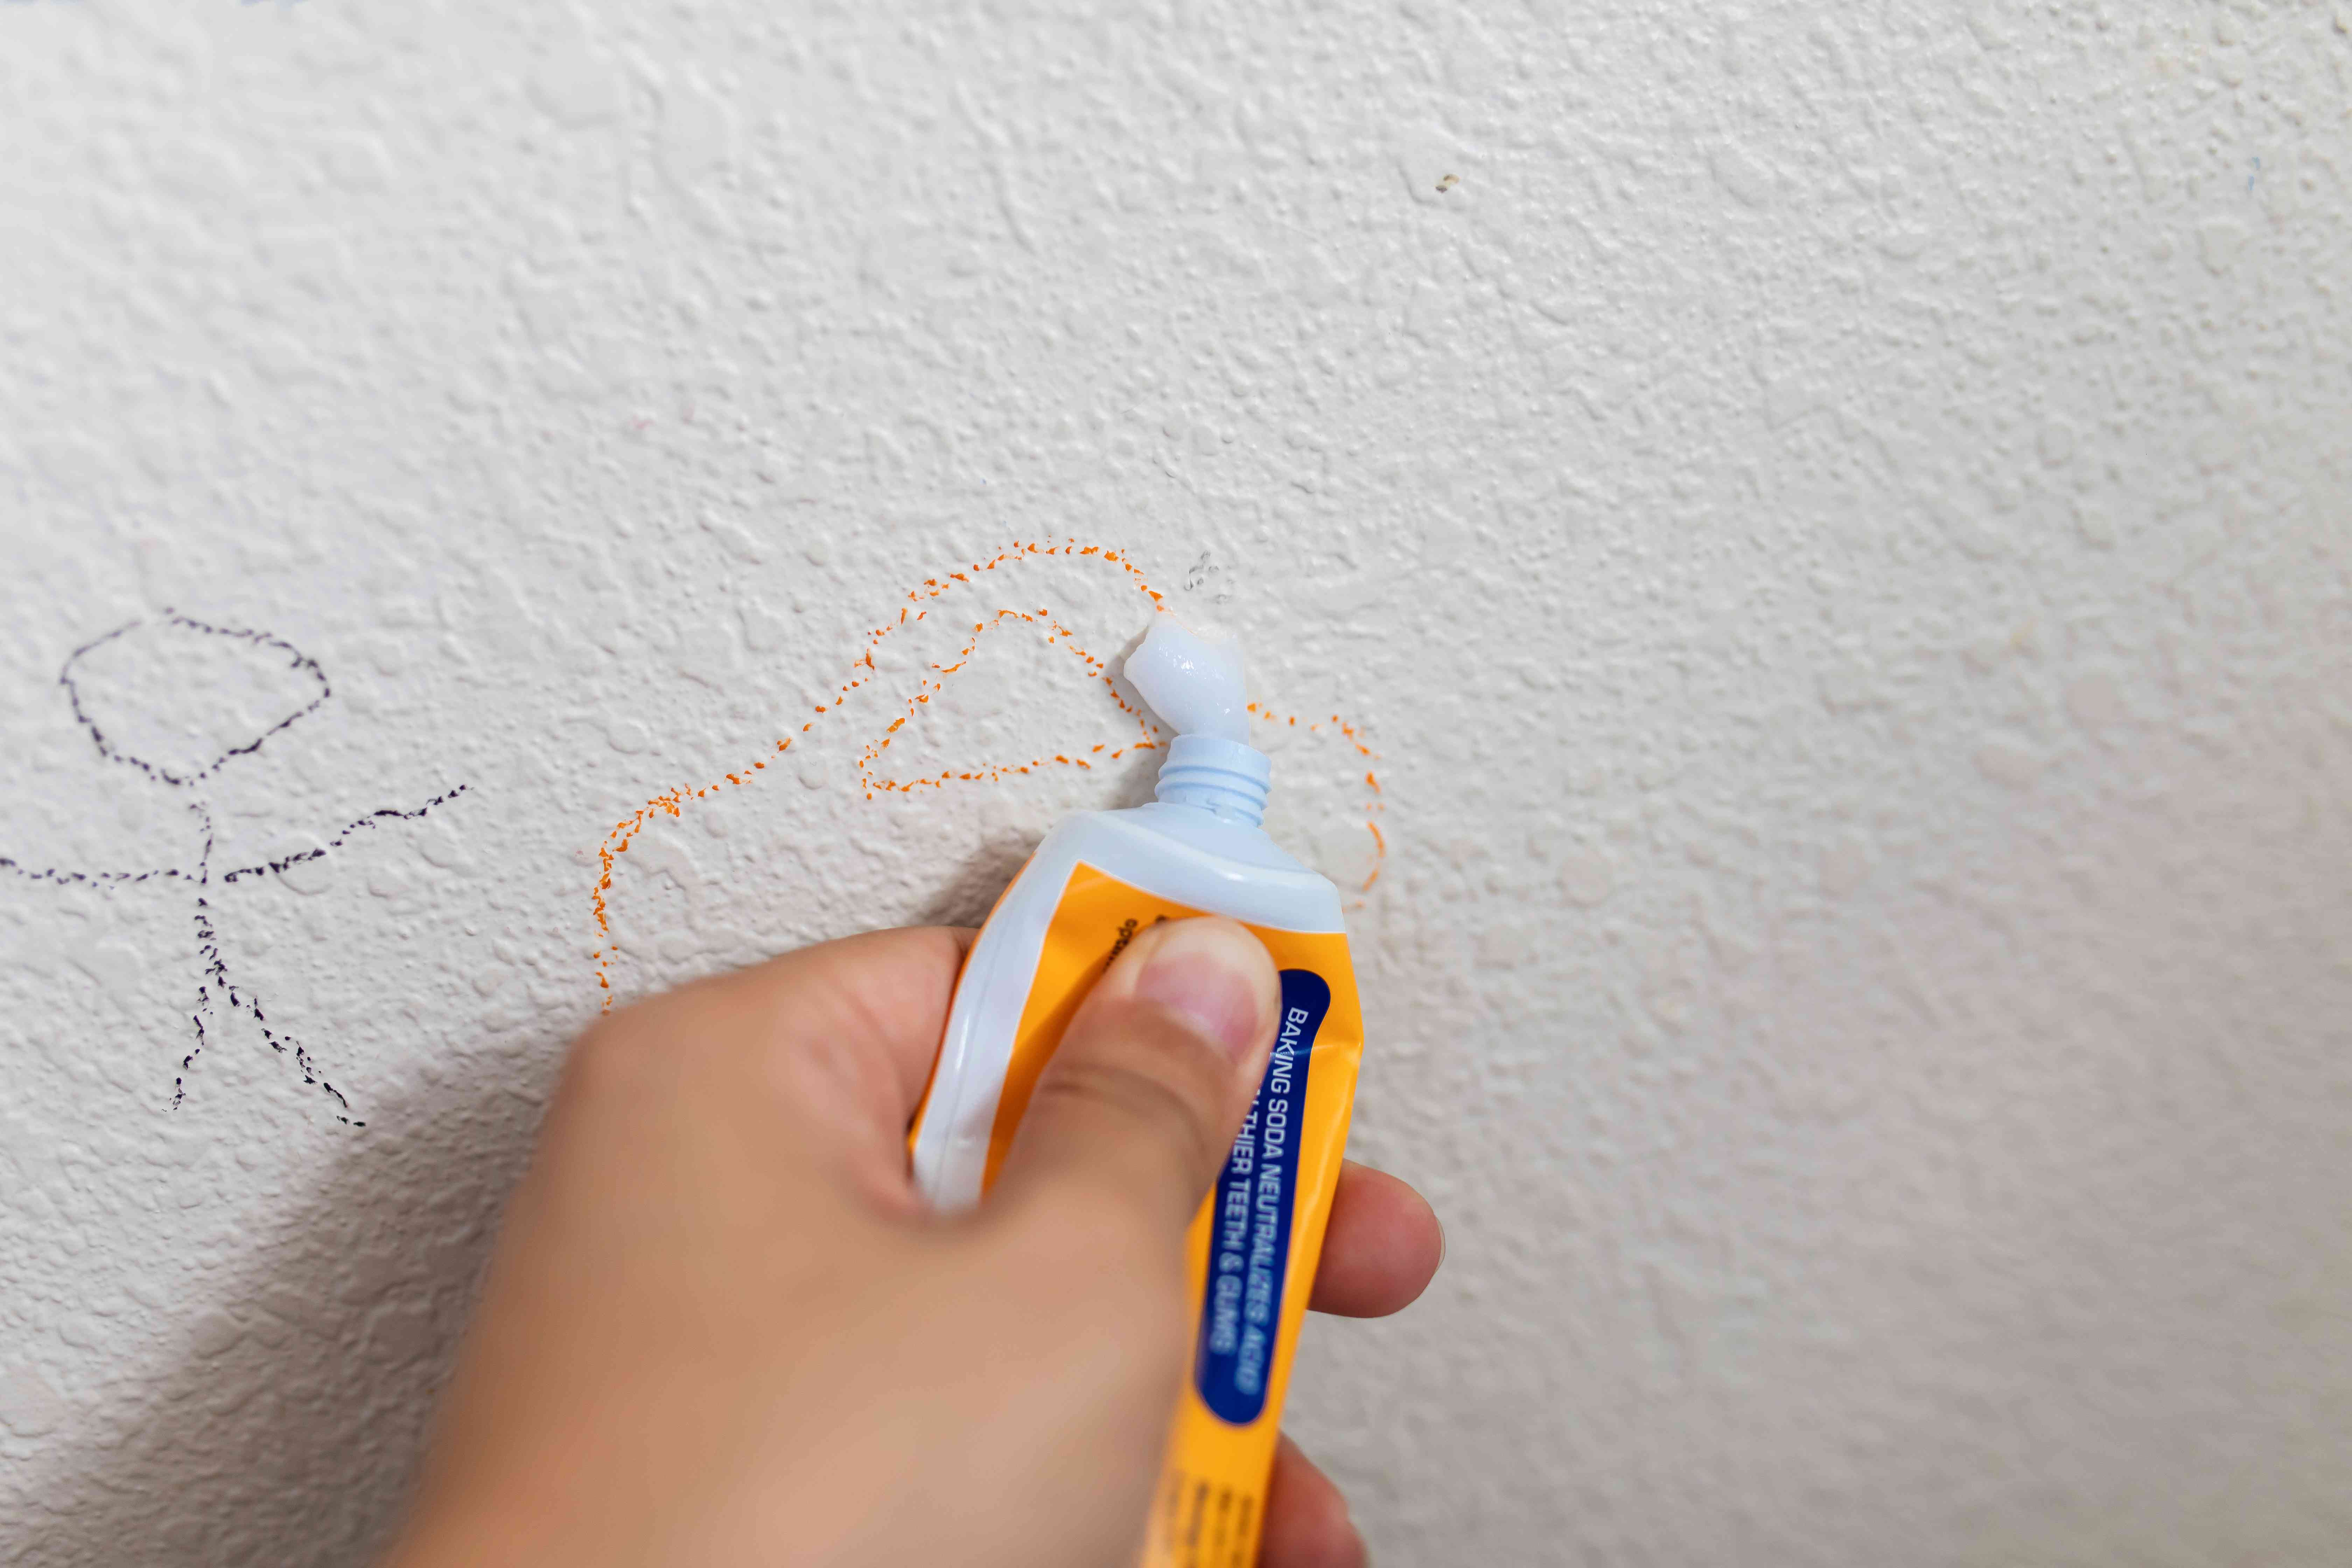 person applying toothpaste to a crayon stain